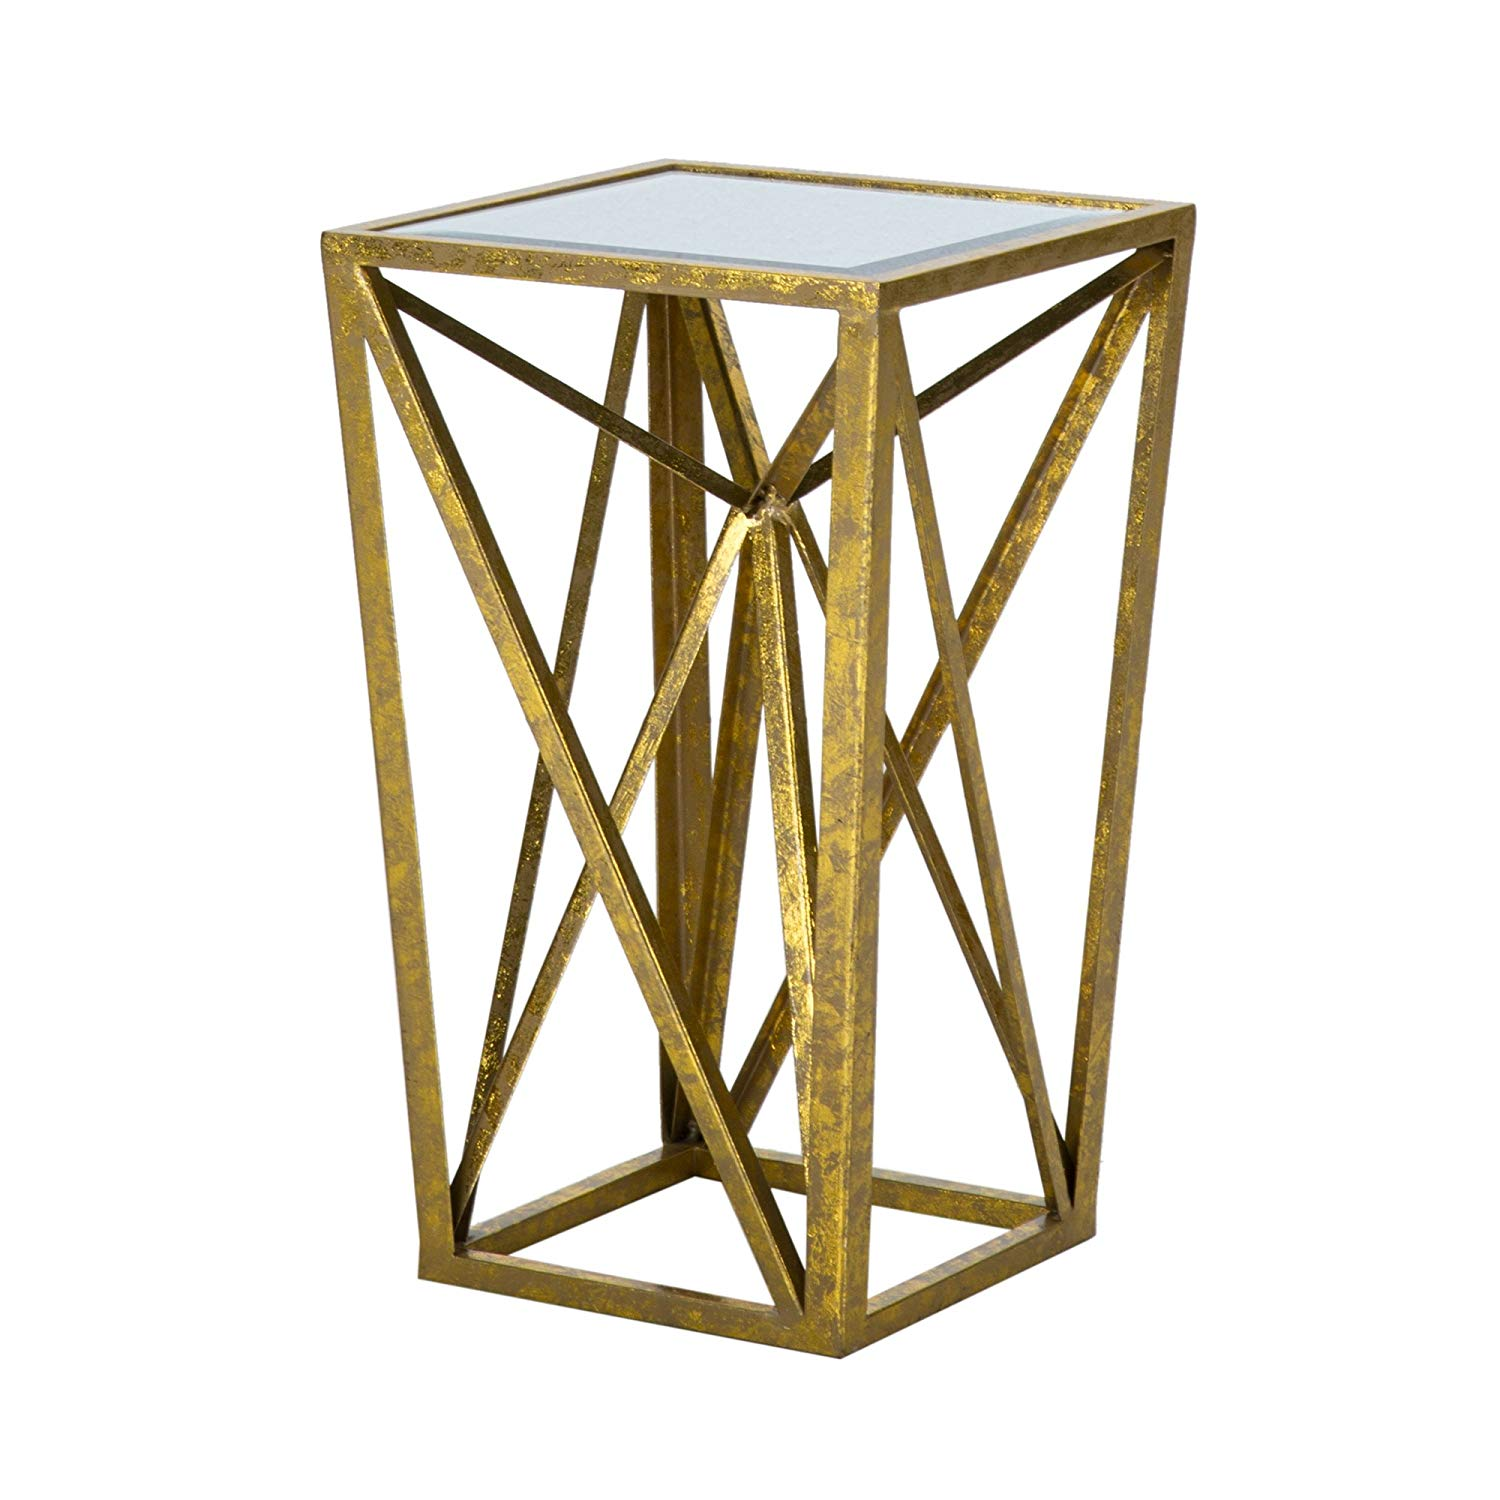 madison park zee accent tables mirror glass metal end table with side gold angular design modern style piece top hollow round deck furniture set small coffee ikea outdoor cooler